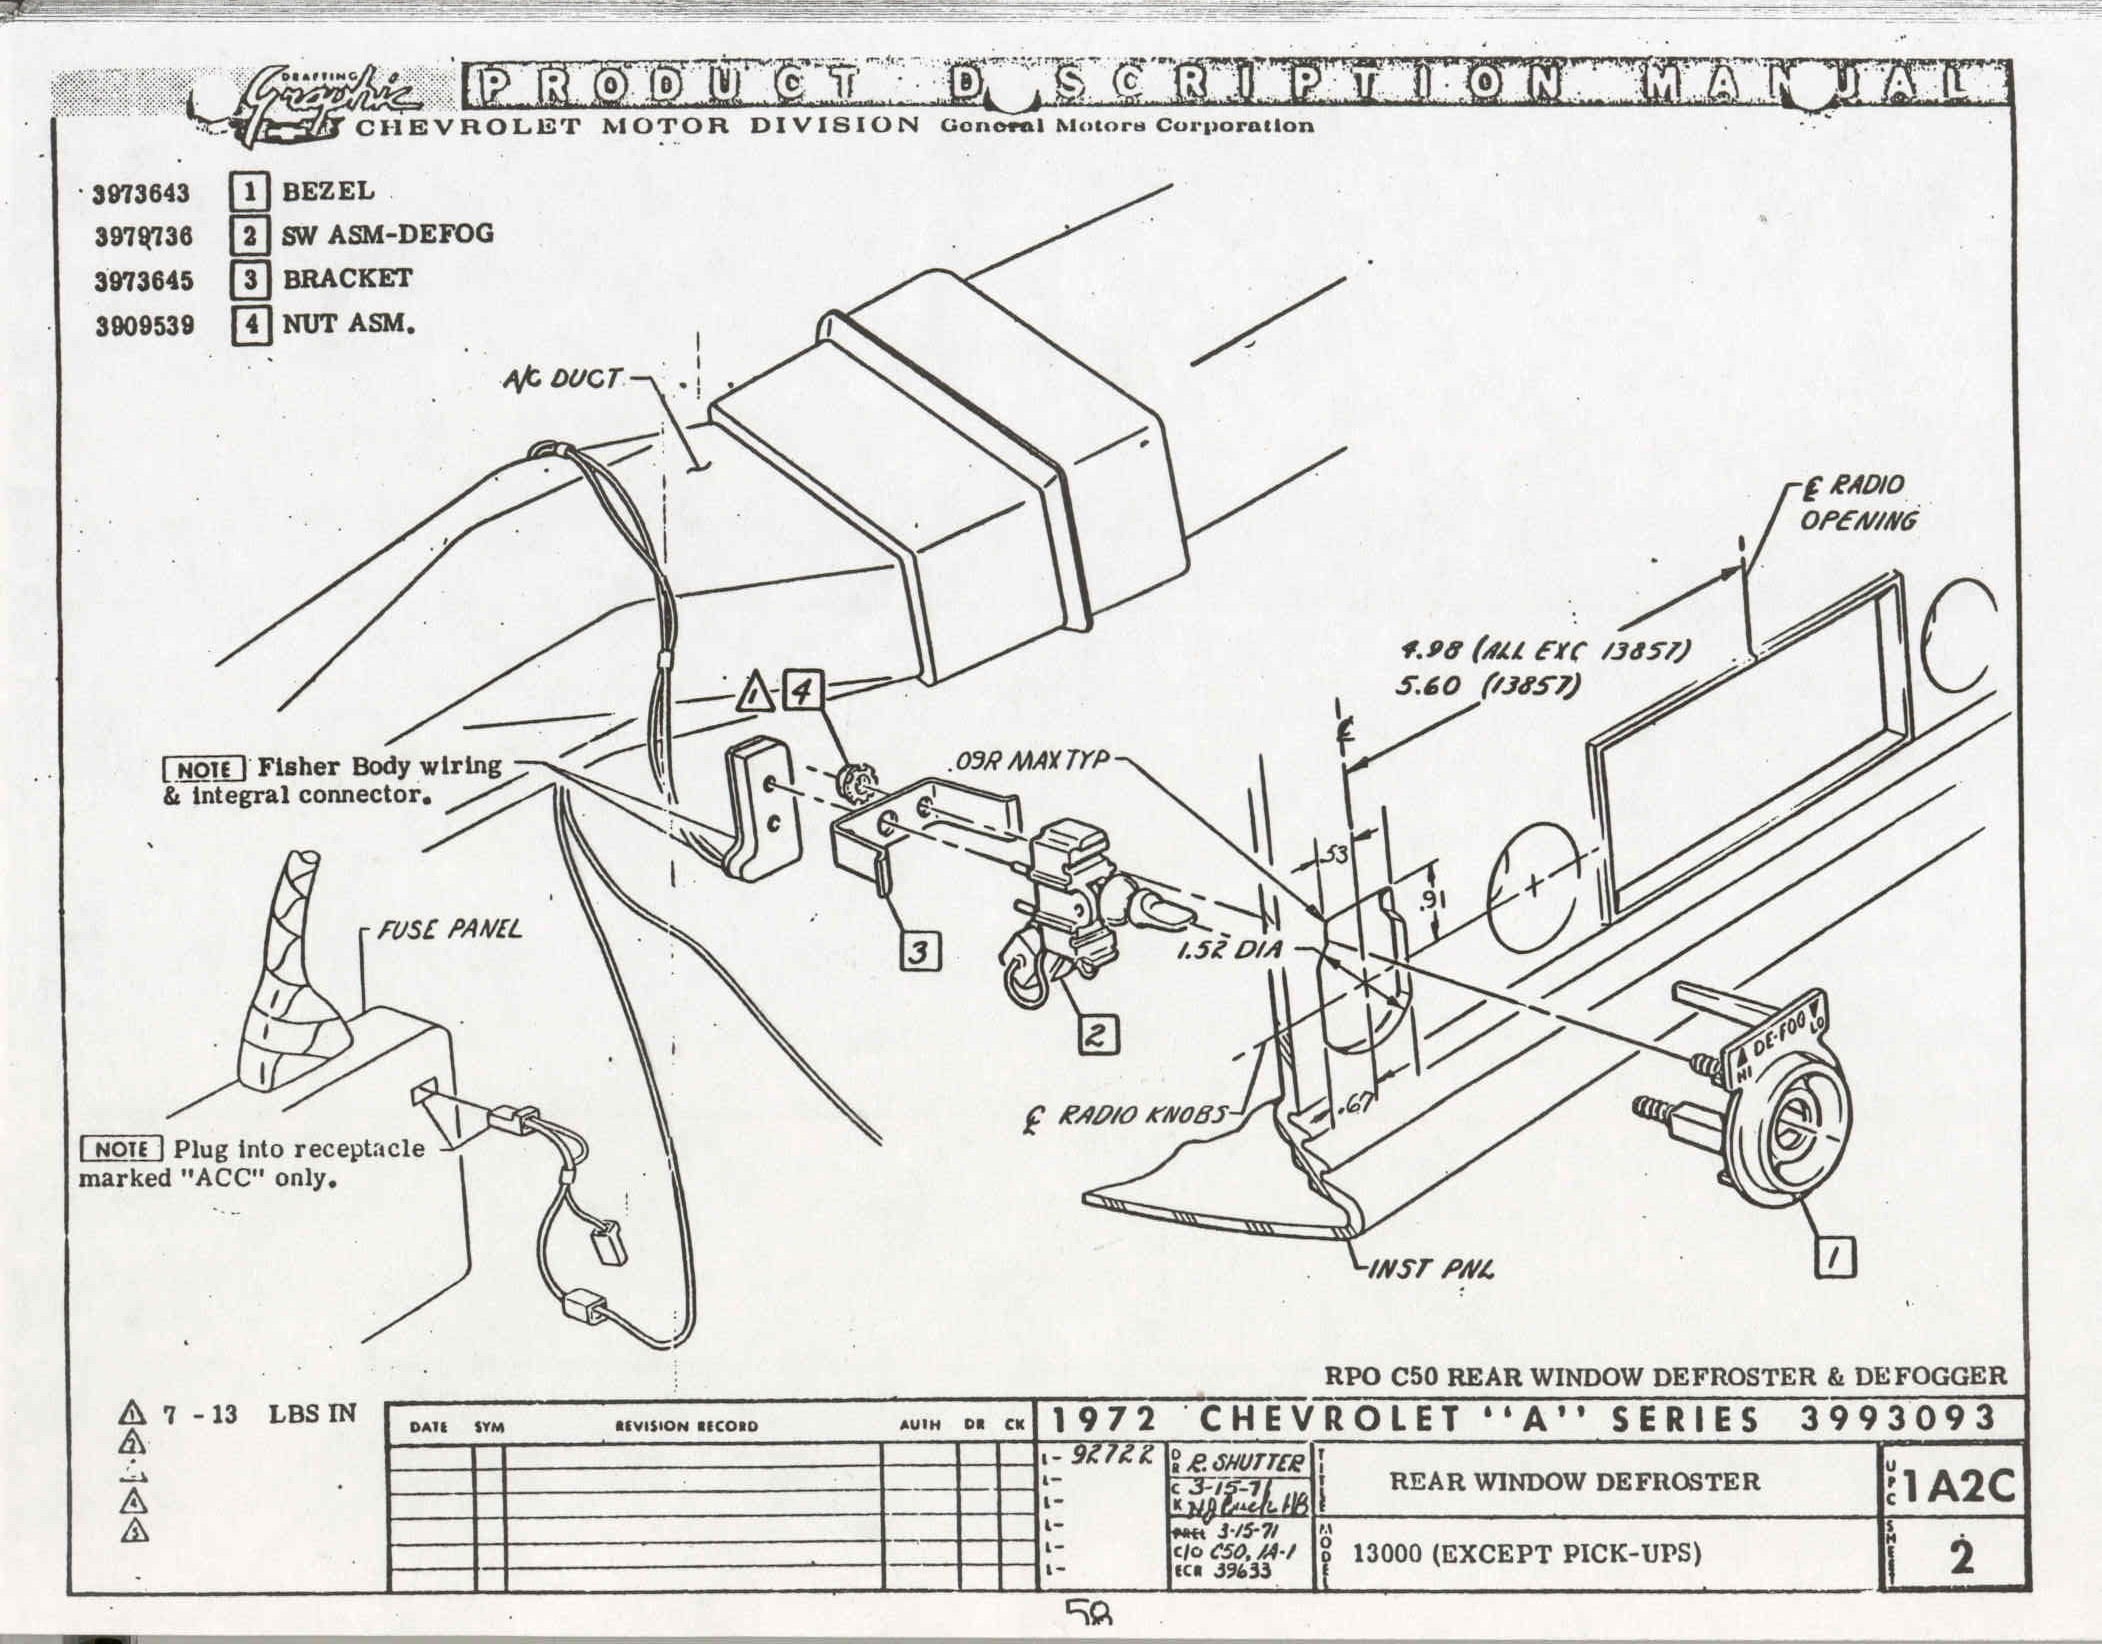 70 chevelle alternator wiring diagram best wiring library John Deere Sabre Wiring Diagram cowl induction wiring diagram just another wiring diagram blog u2022 rh aesar store 1970 chevy c10